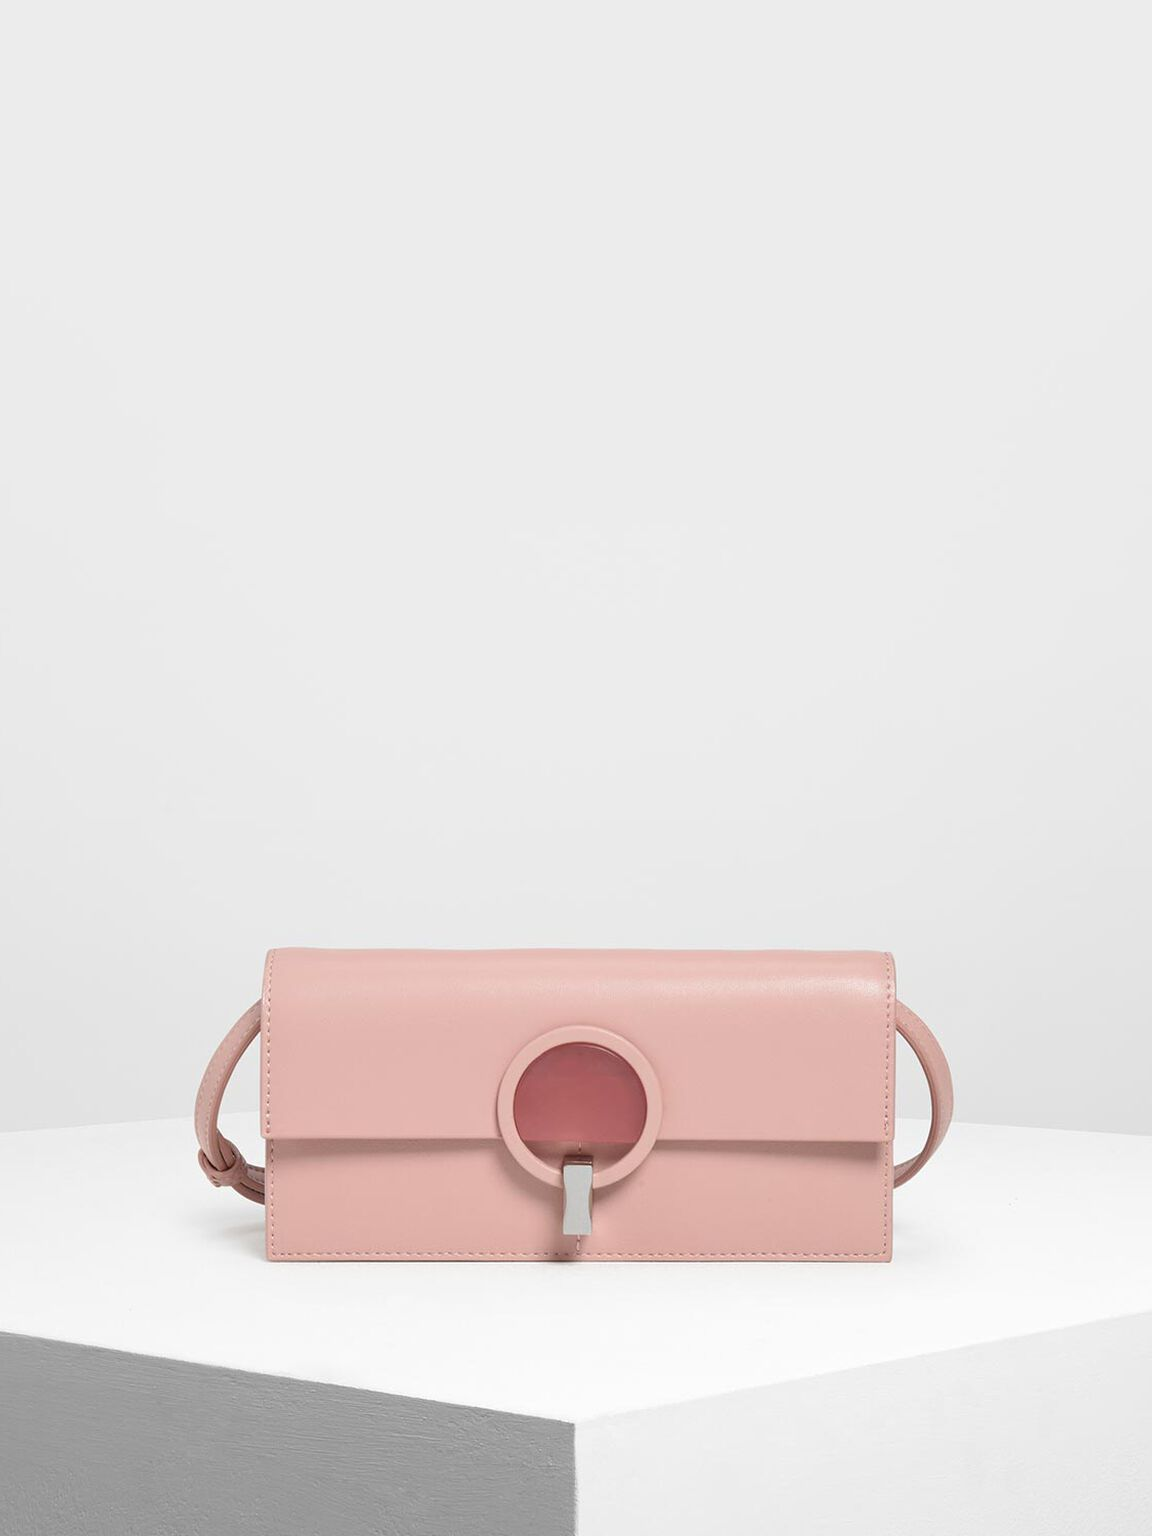 Ring Turn Lock Wallet, Pink, hi-res